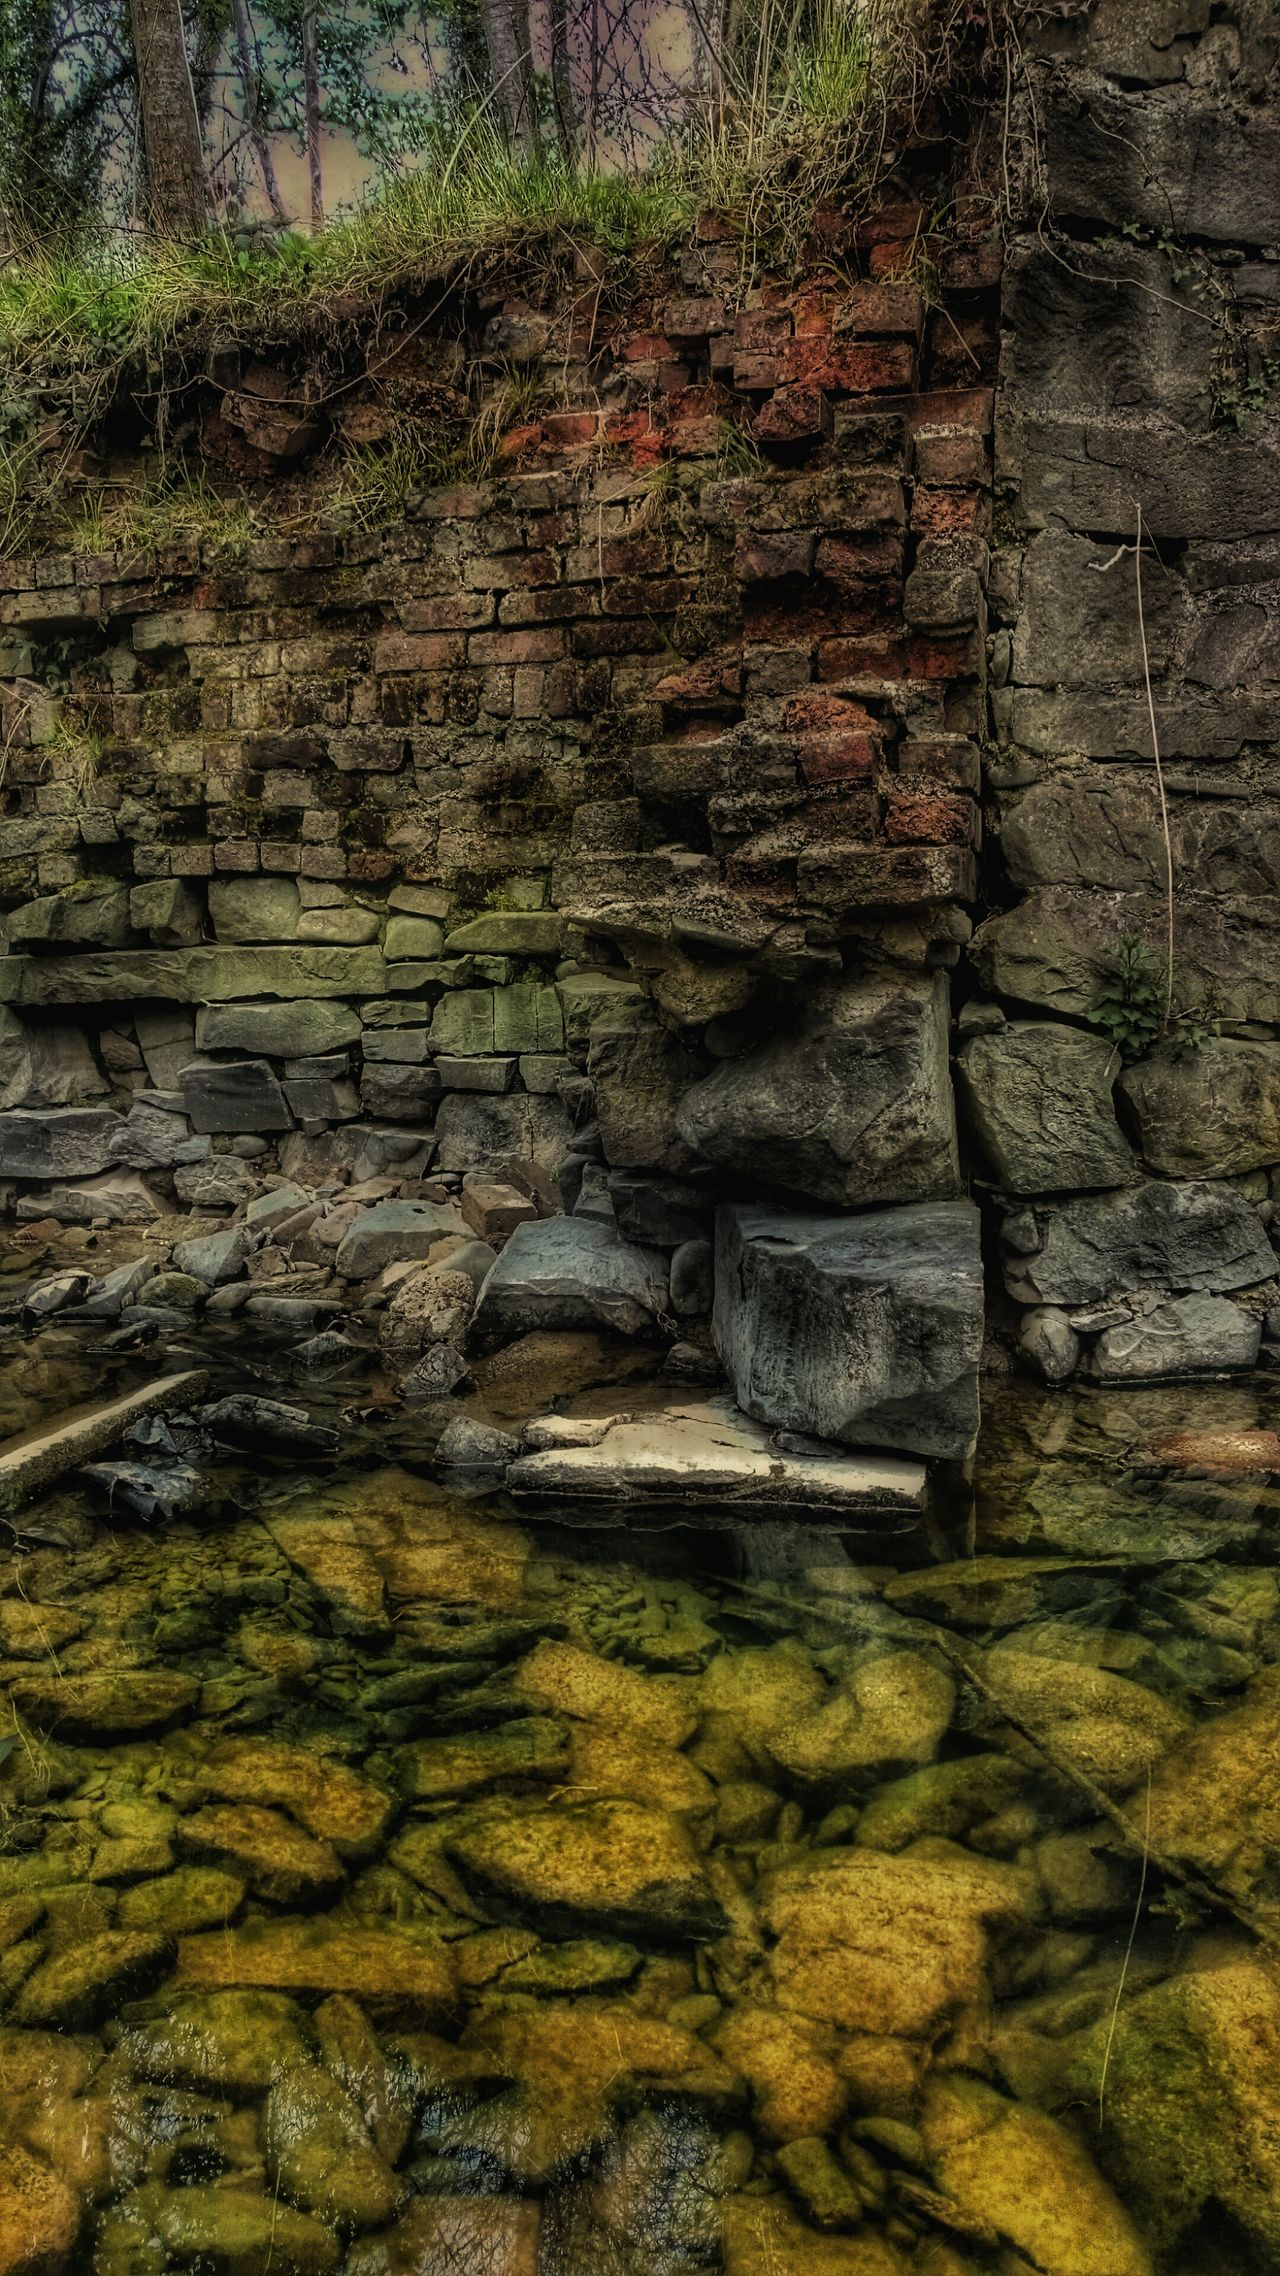 Check This Out For My Friends That Connect Brick Rocks Stone And Water Brickporn EyeEm_abandonment EyeEm Best Shots Stones & Water When Nature Takes Over Times Past Riverside Wales You Beauty Walking Around Stream Woodlandwalks Building On Ruins Ruined Building Ages Past Old Buildings Newtown